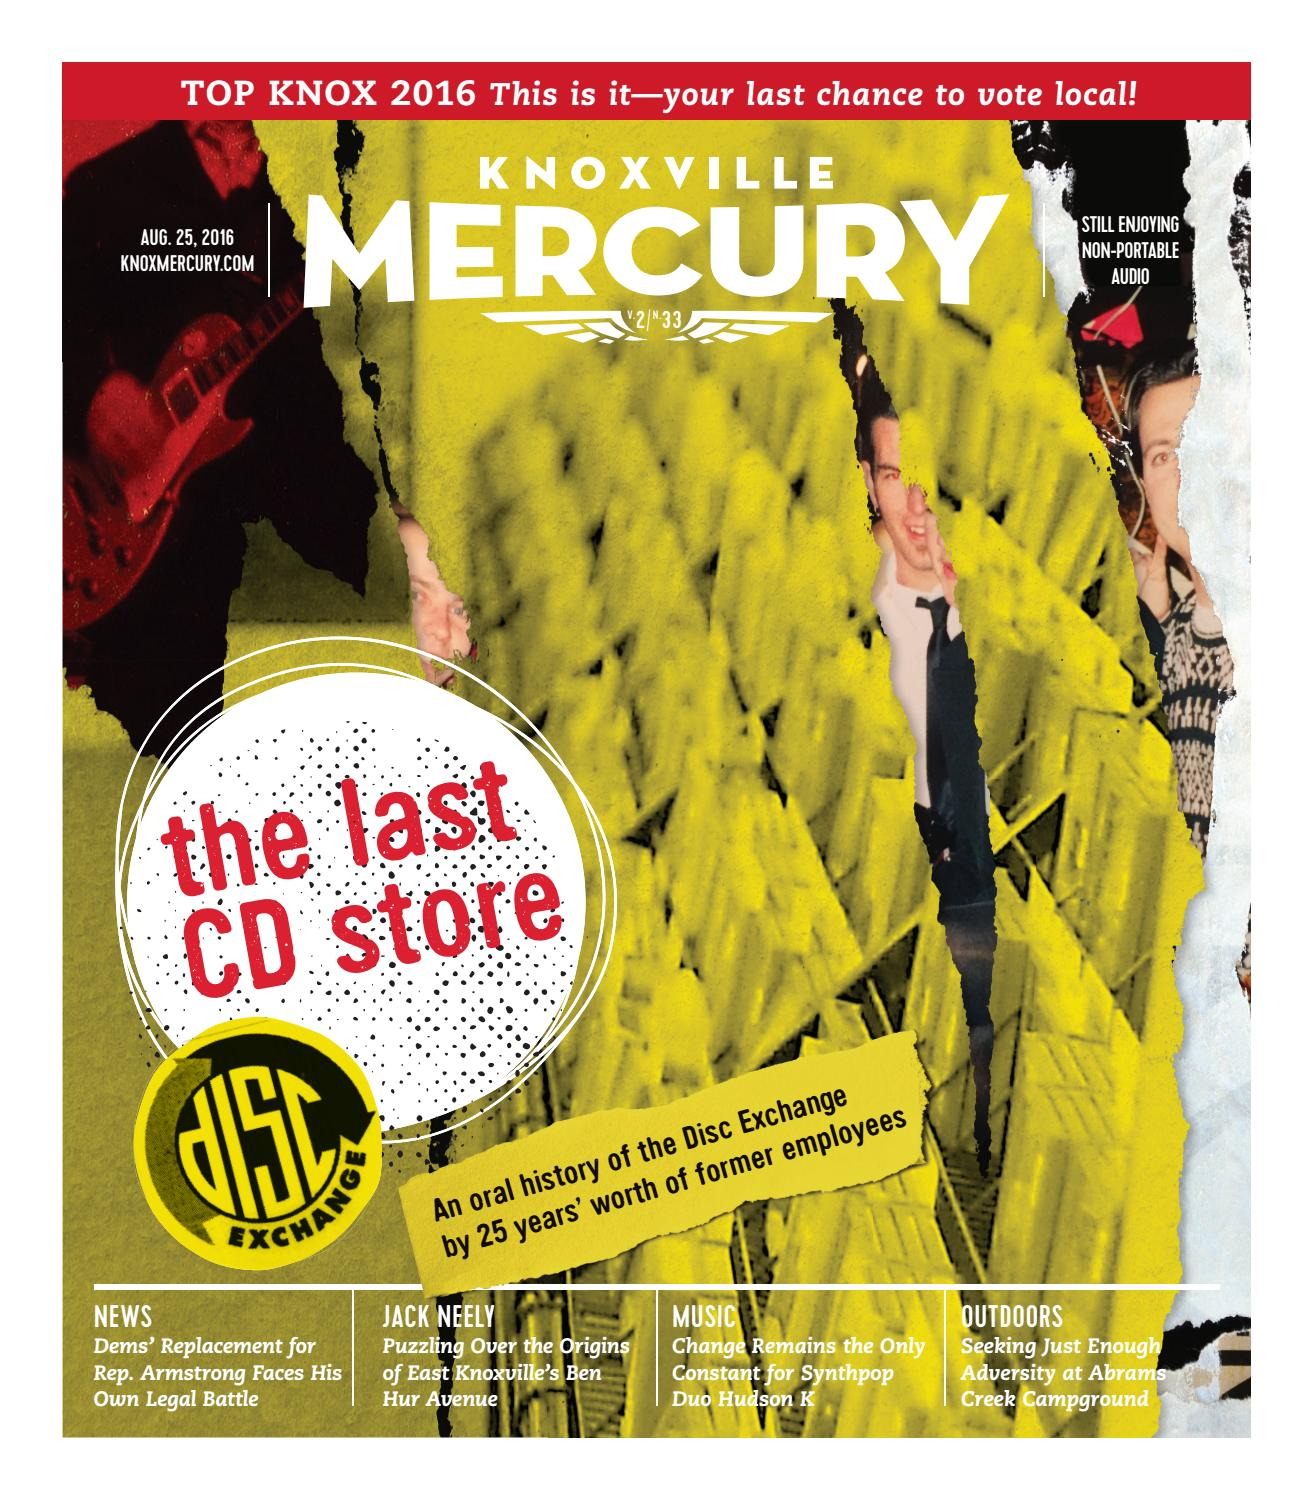 Vol  2, Issue 33 - Aug  25, 2016 by Knoxville Mercury - issuu